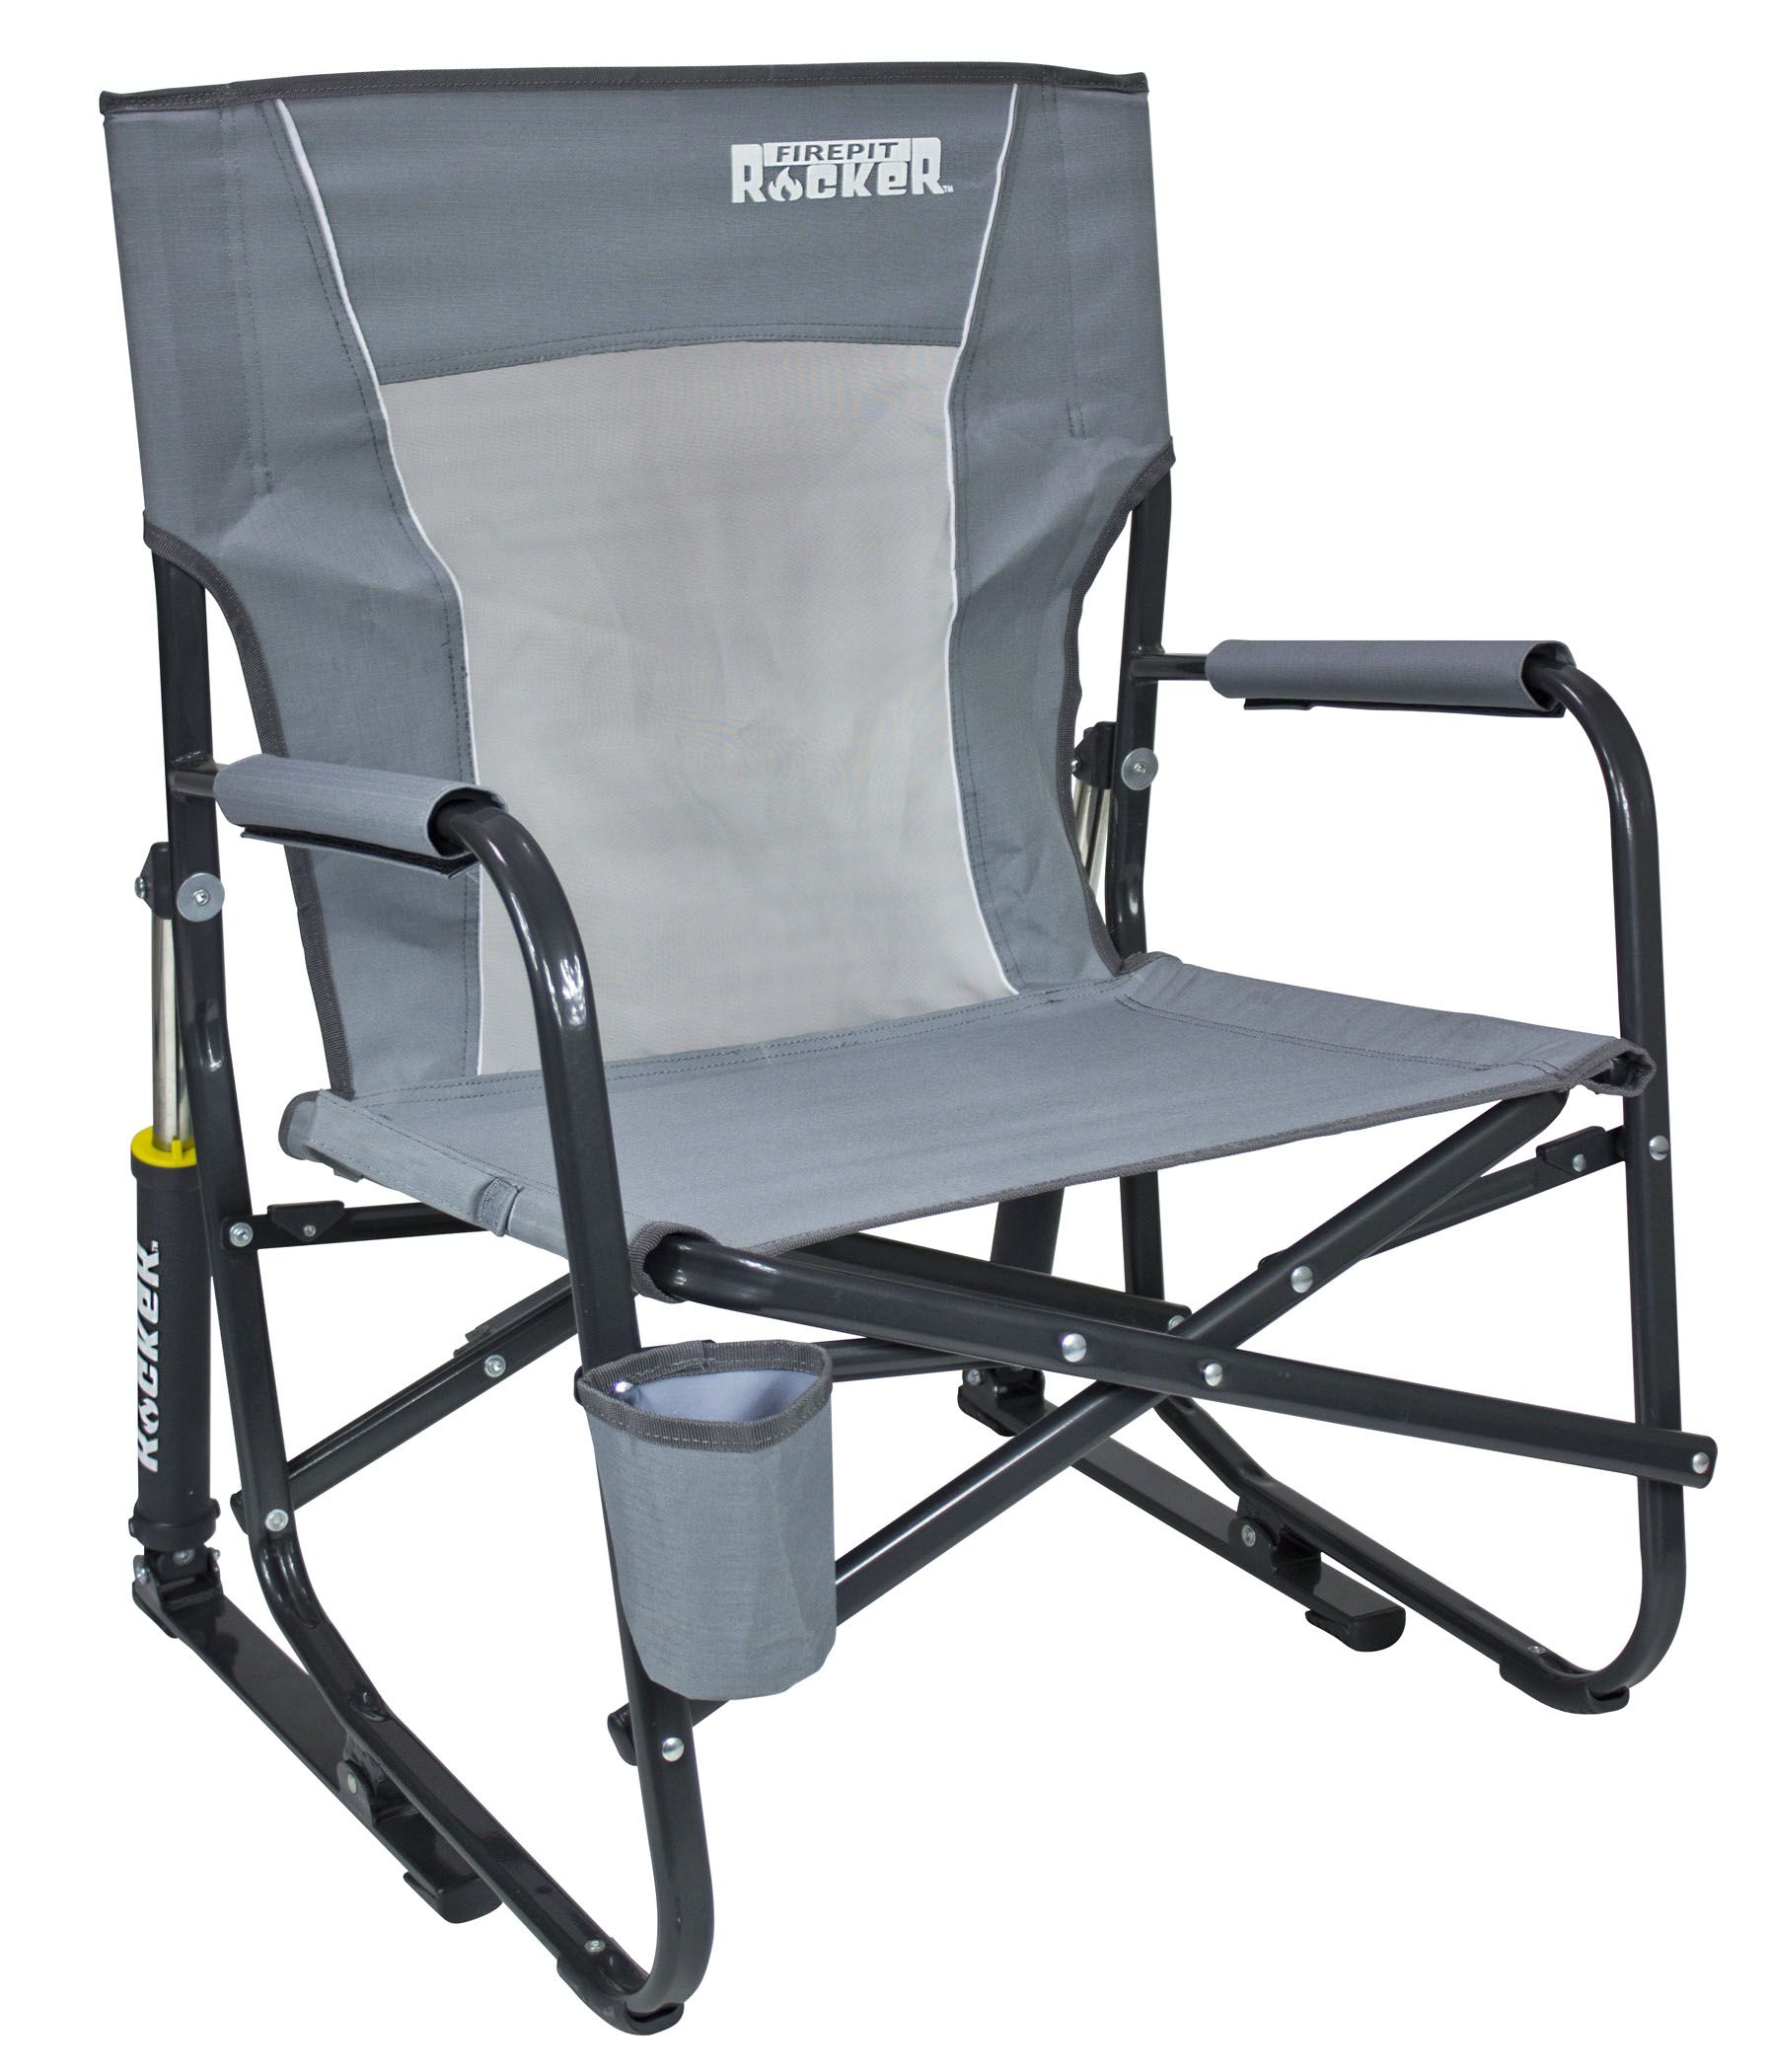 Firepit Rocker Firepit Chairs From Gci Outdoor Folding Rocking Chair Portable Rocking Chair Outdoor Chairs